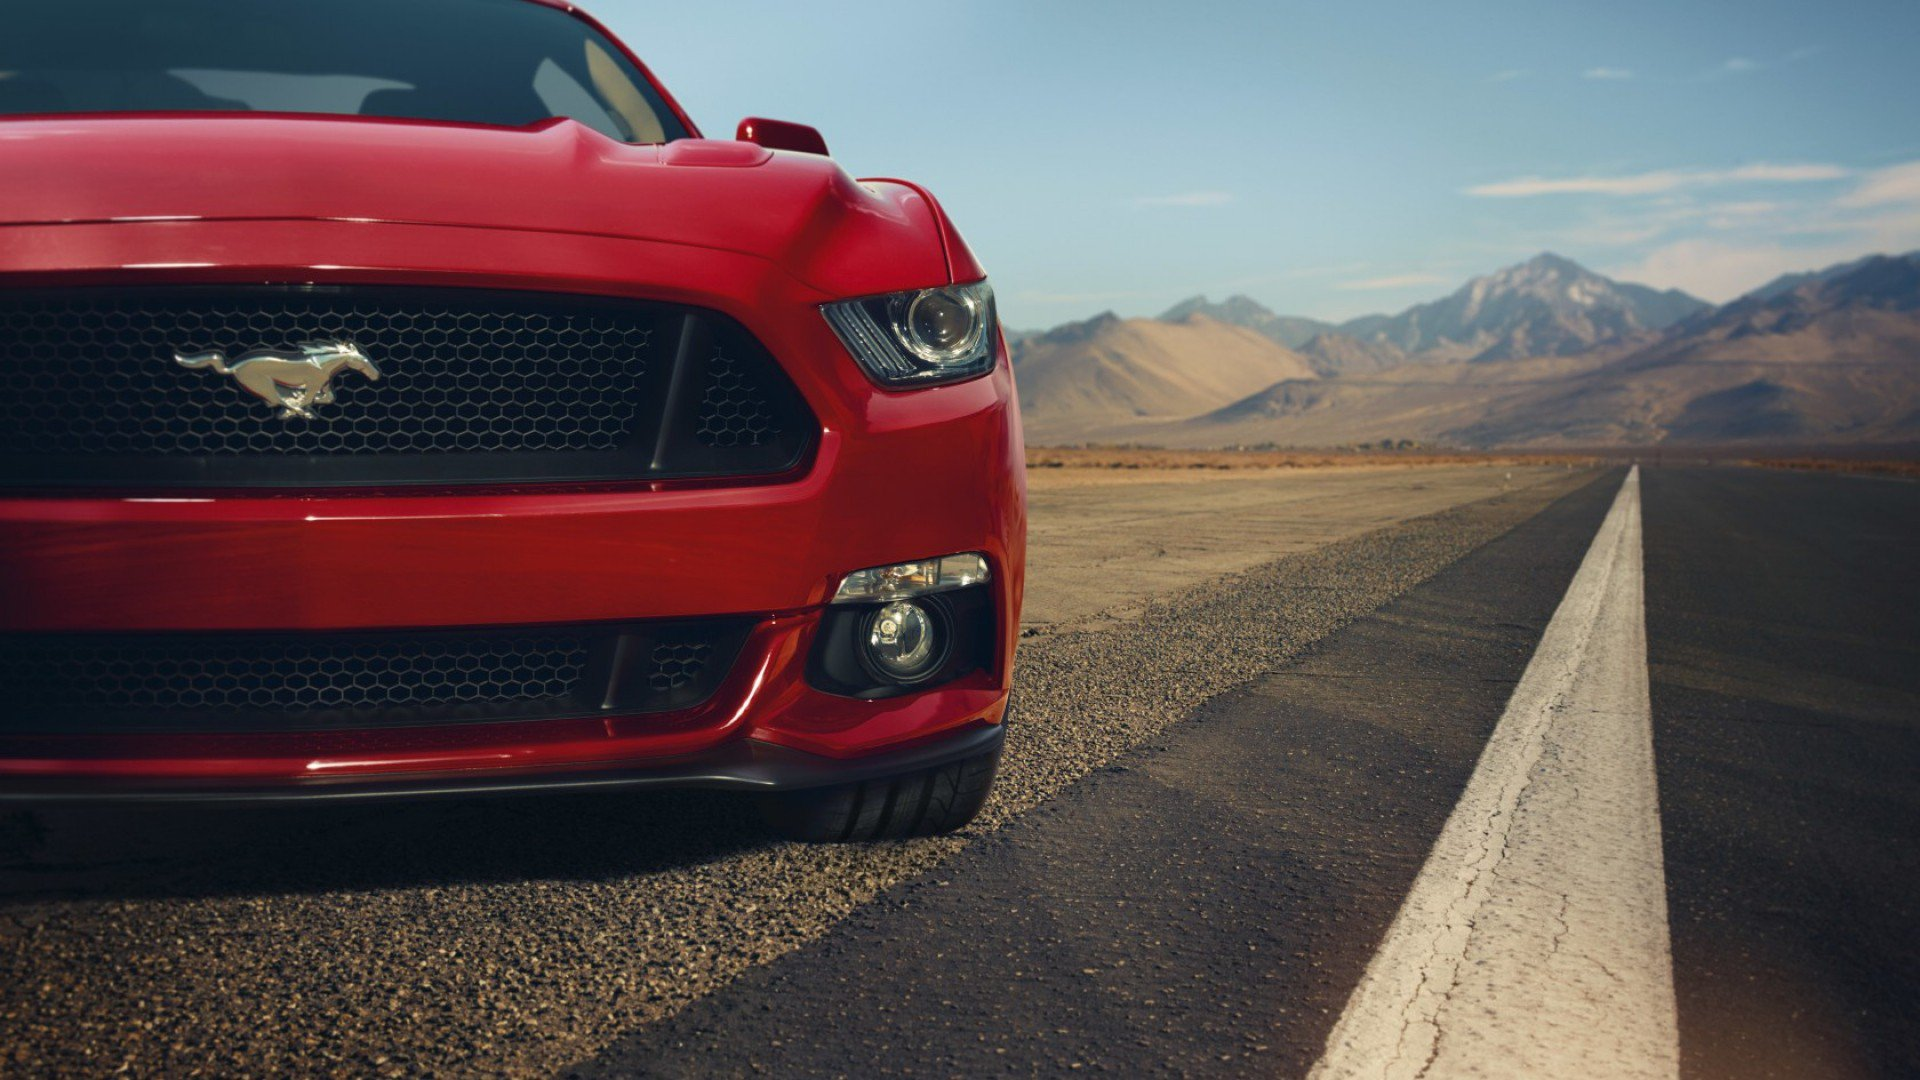 Ford Mustang Gt Red Front Muscle Car Hd Cars 4k Wallpapers Images